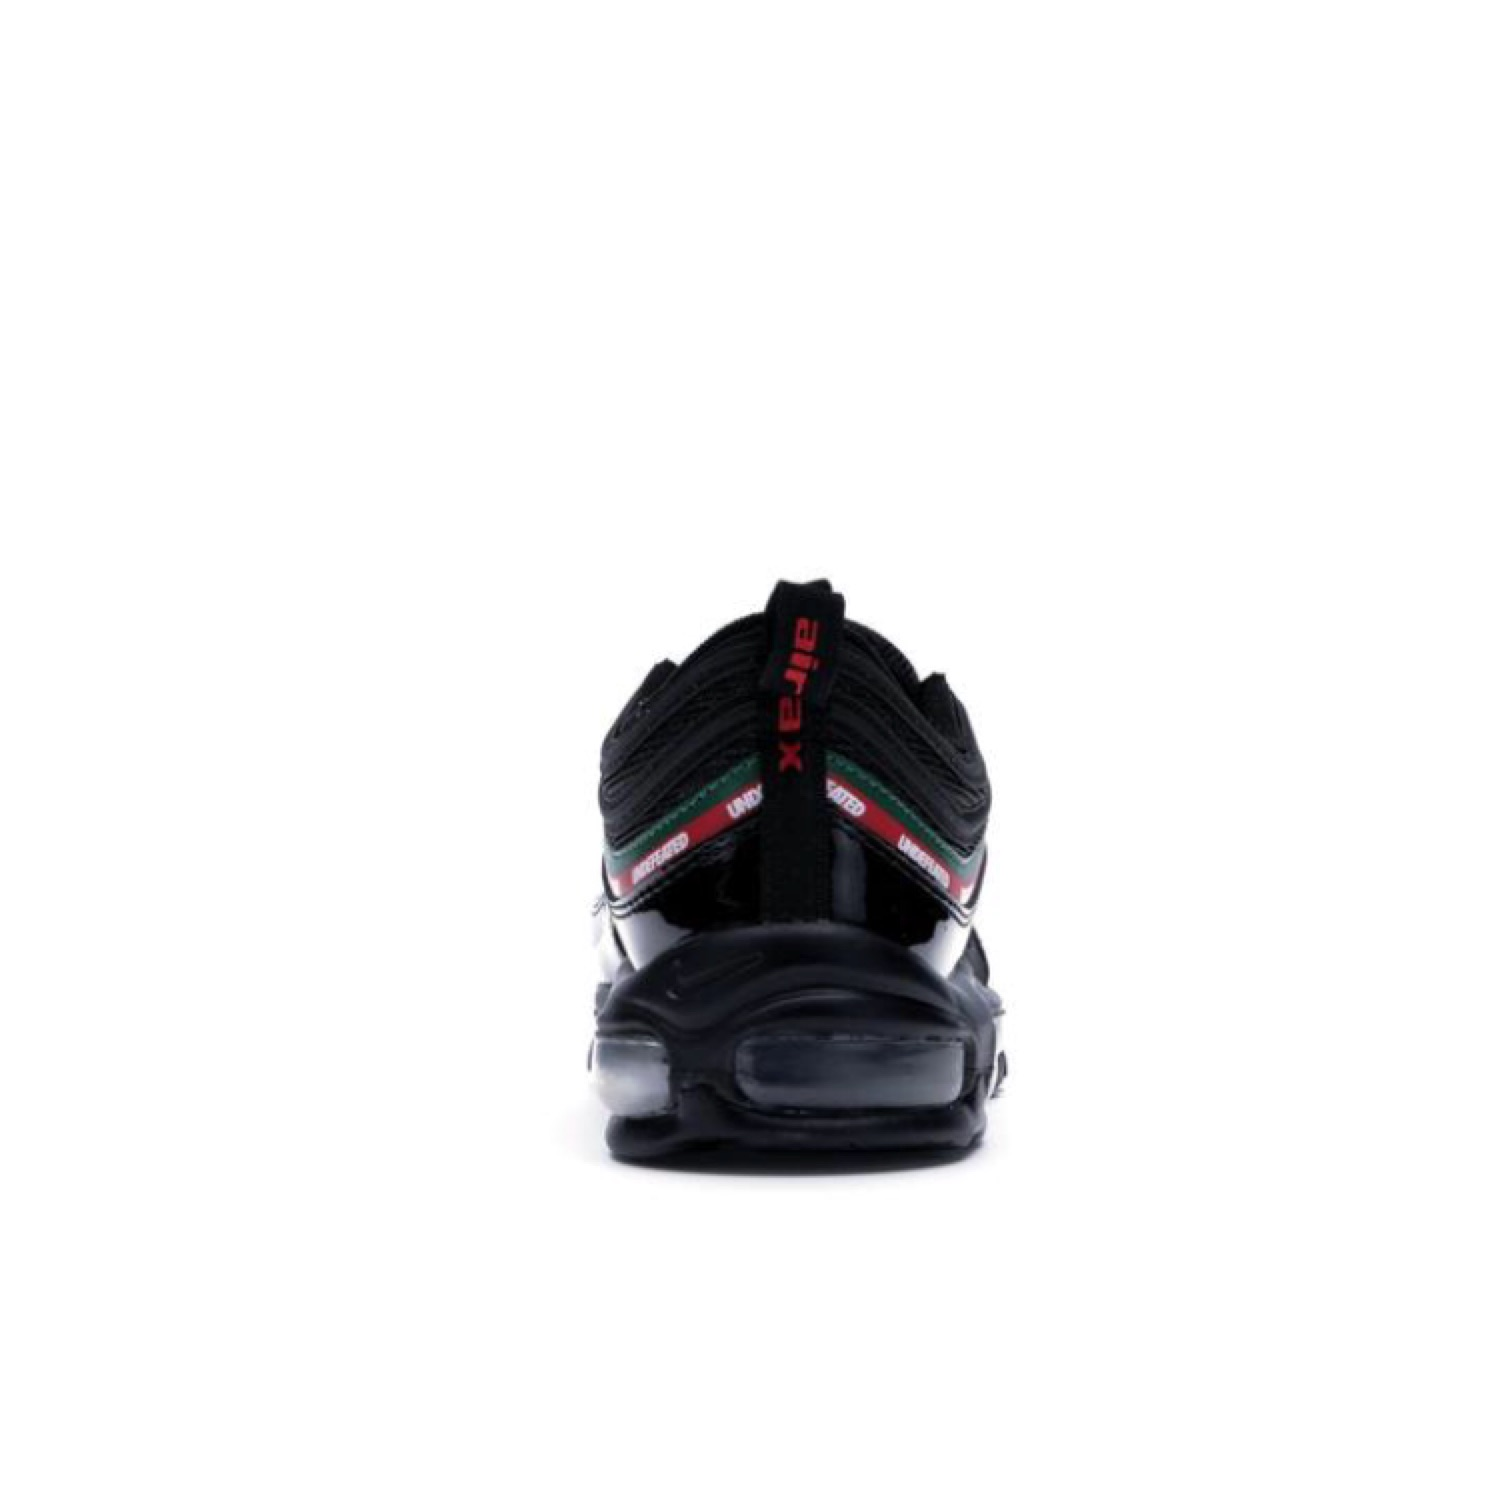 Air Max 97 Undftd Black Used Cond. 810